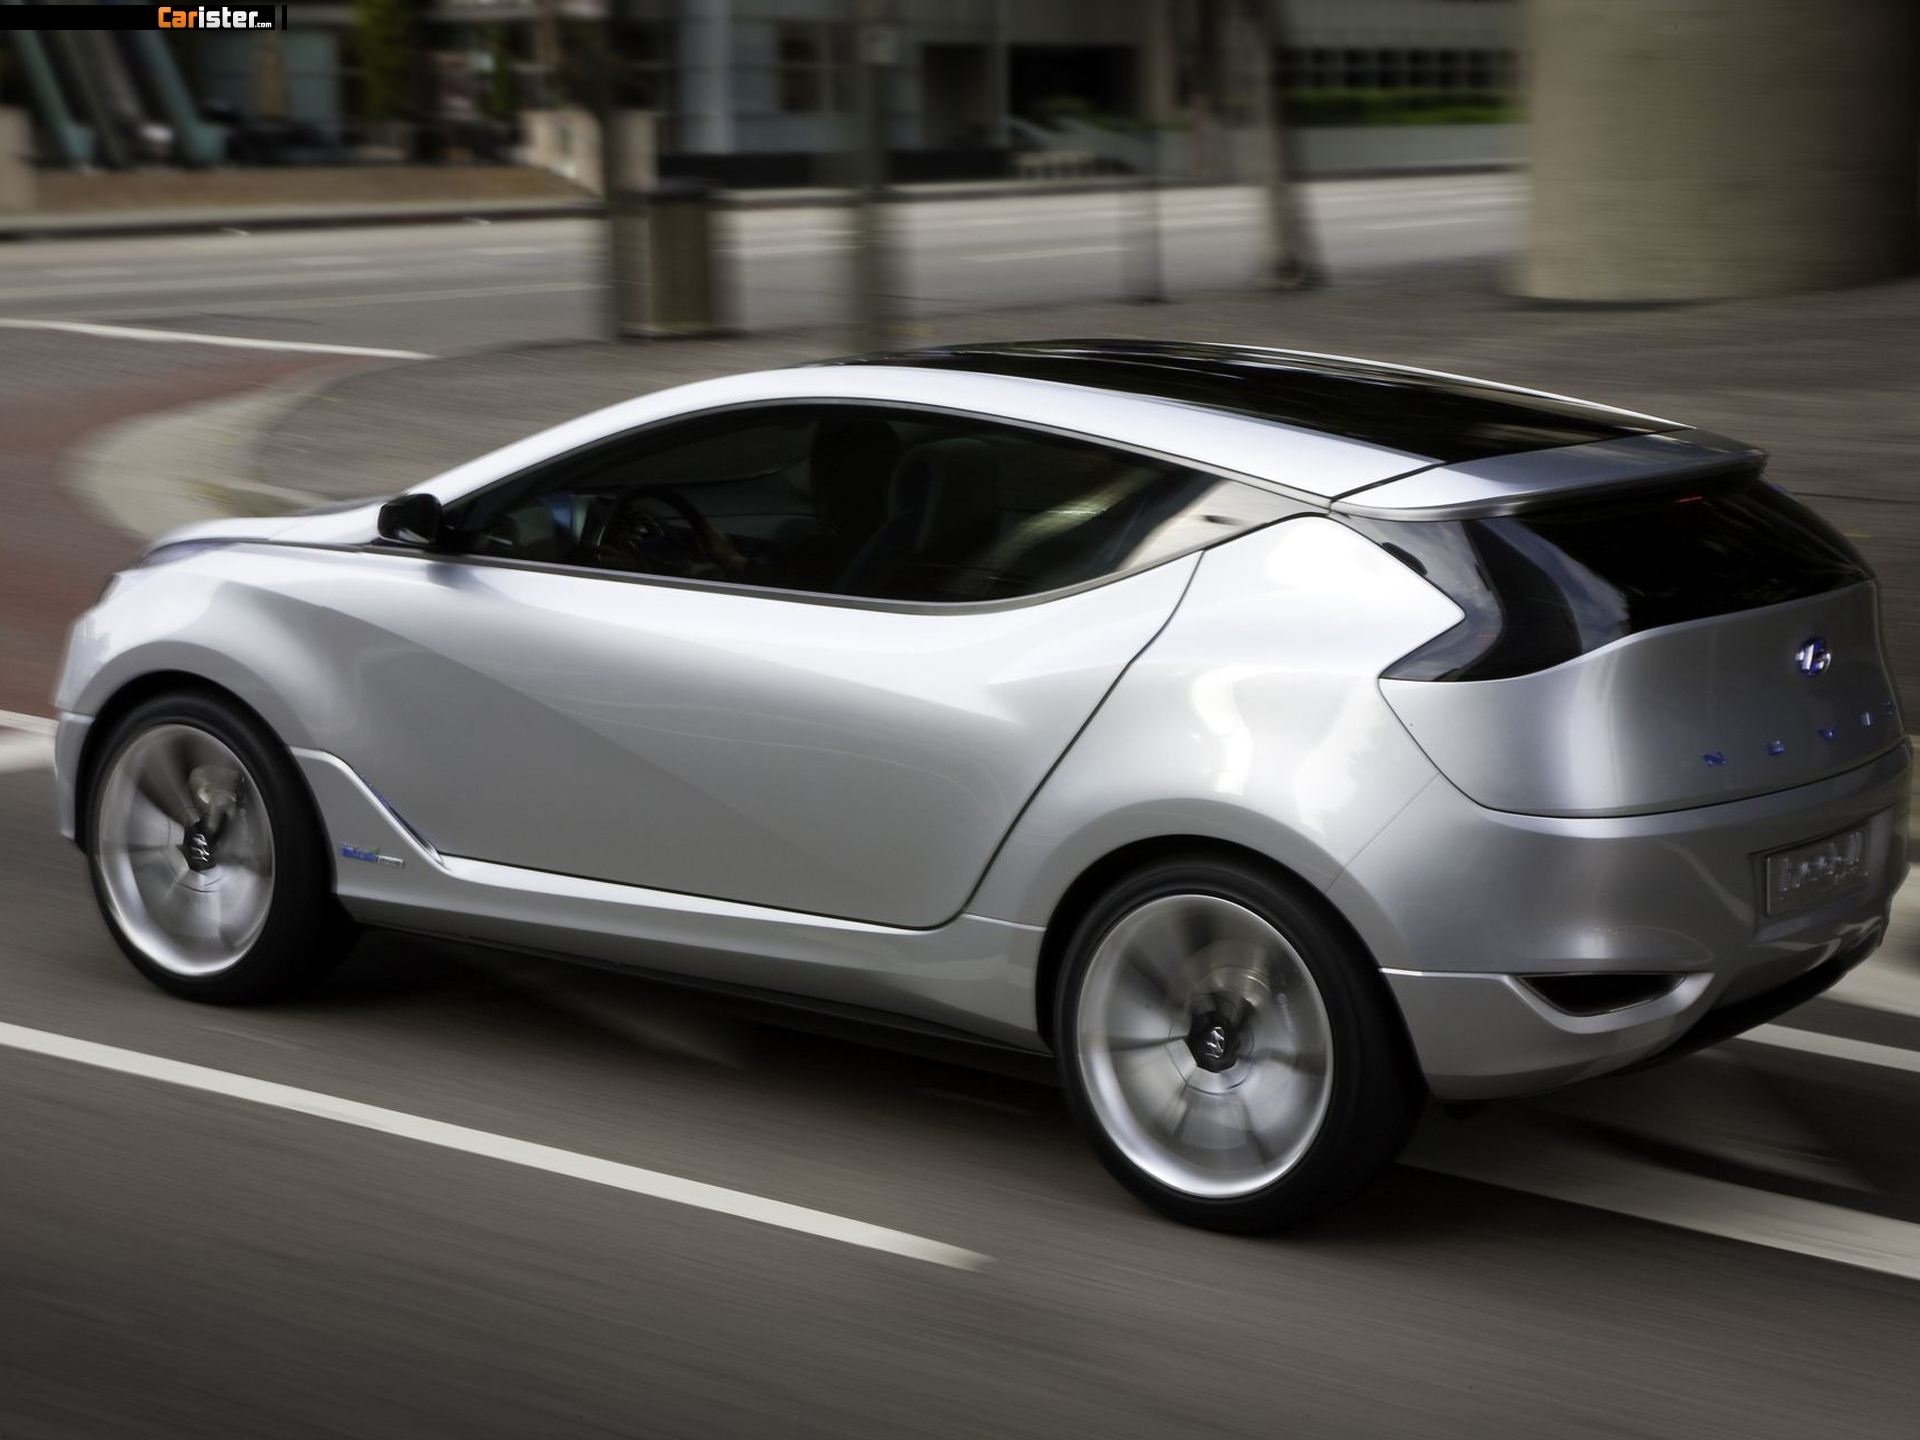 Hyundai Nuvis Concept 2009 - Photo 23 - Taille: 1920x1440